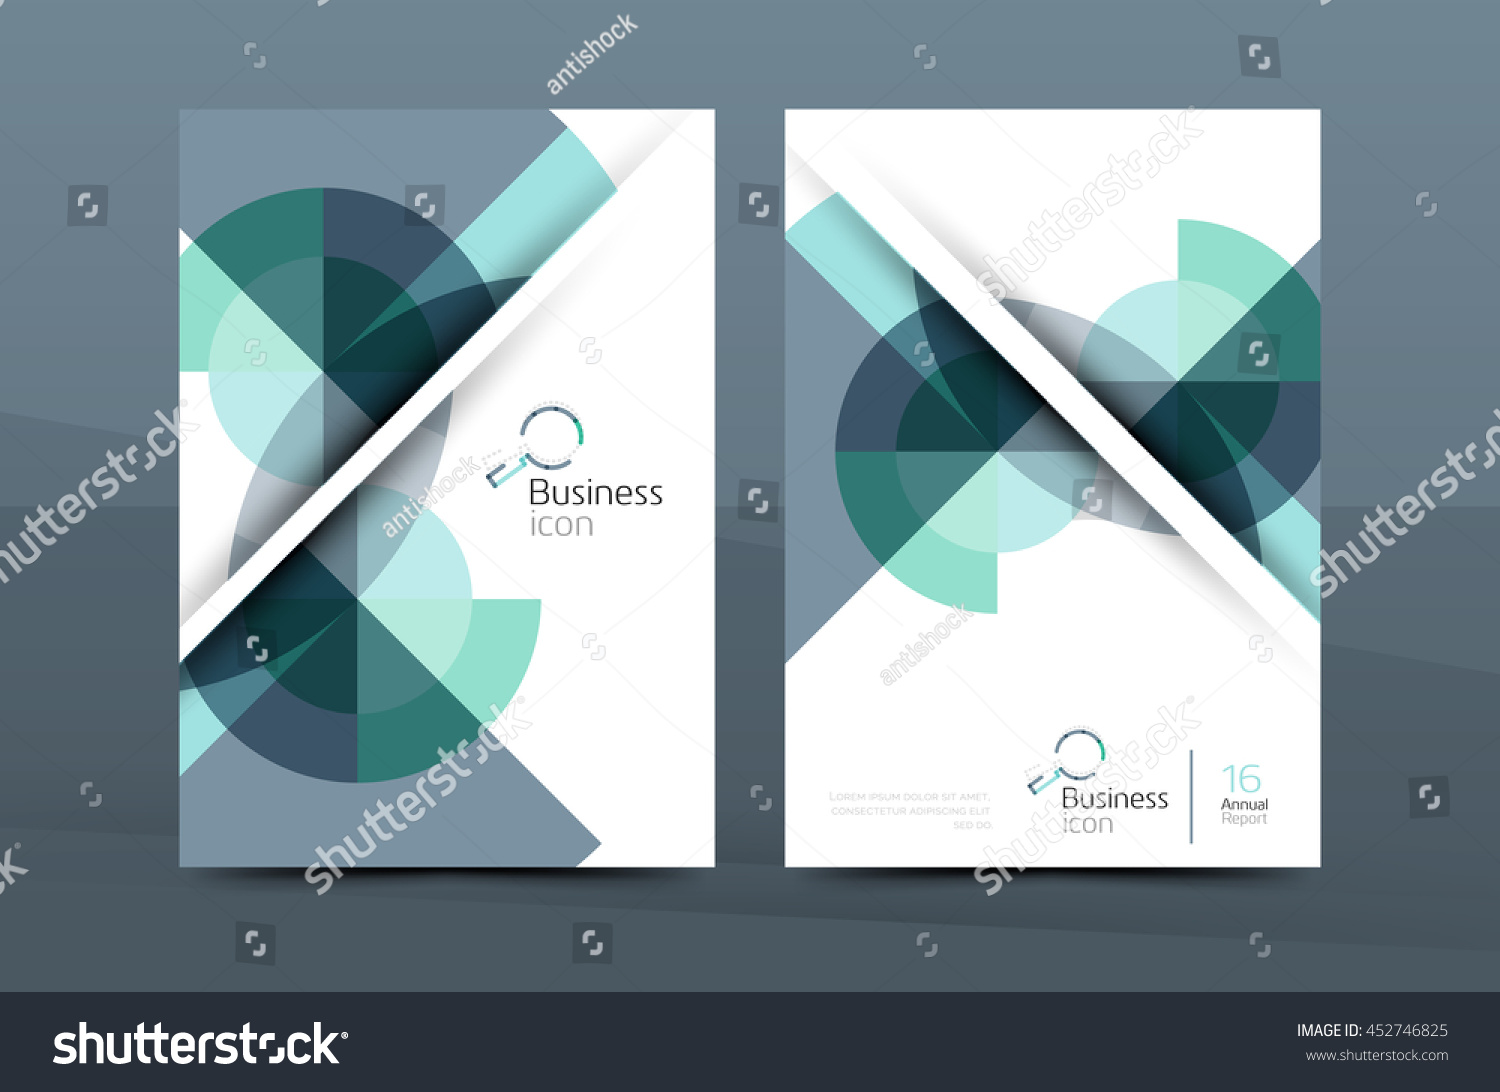 royalty design of annual report cover brochure 452746825 design of annual report cover brochure flyer template layout vector leaflet abstract background a4 size page stock vector